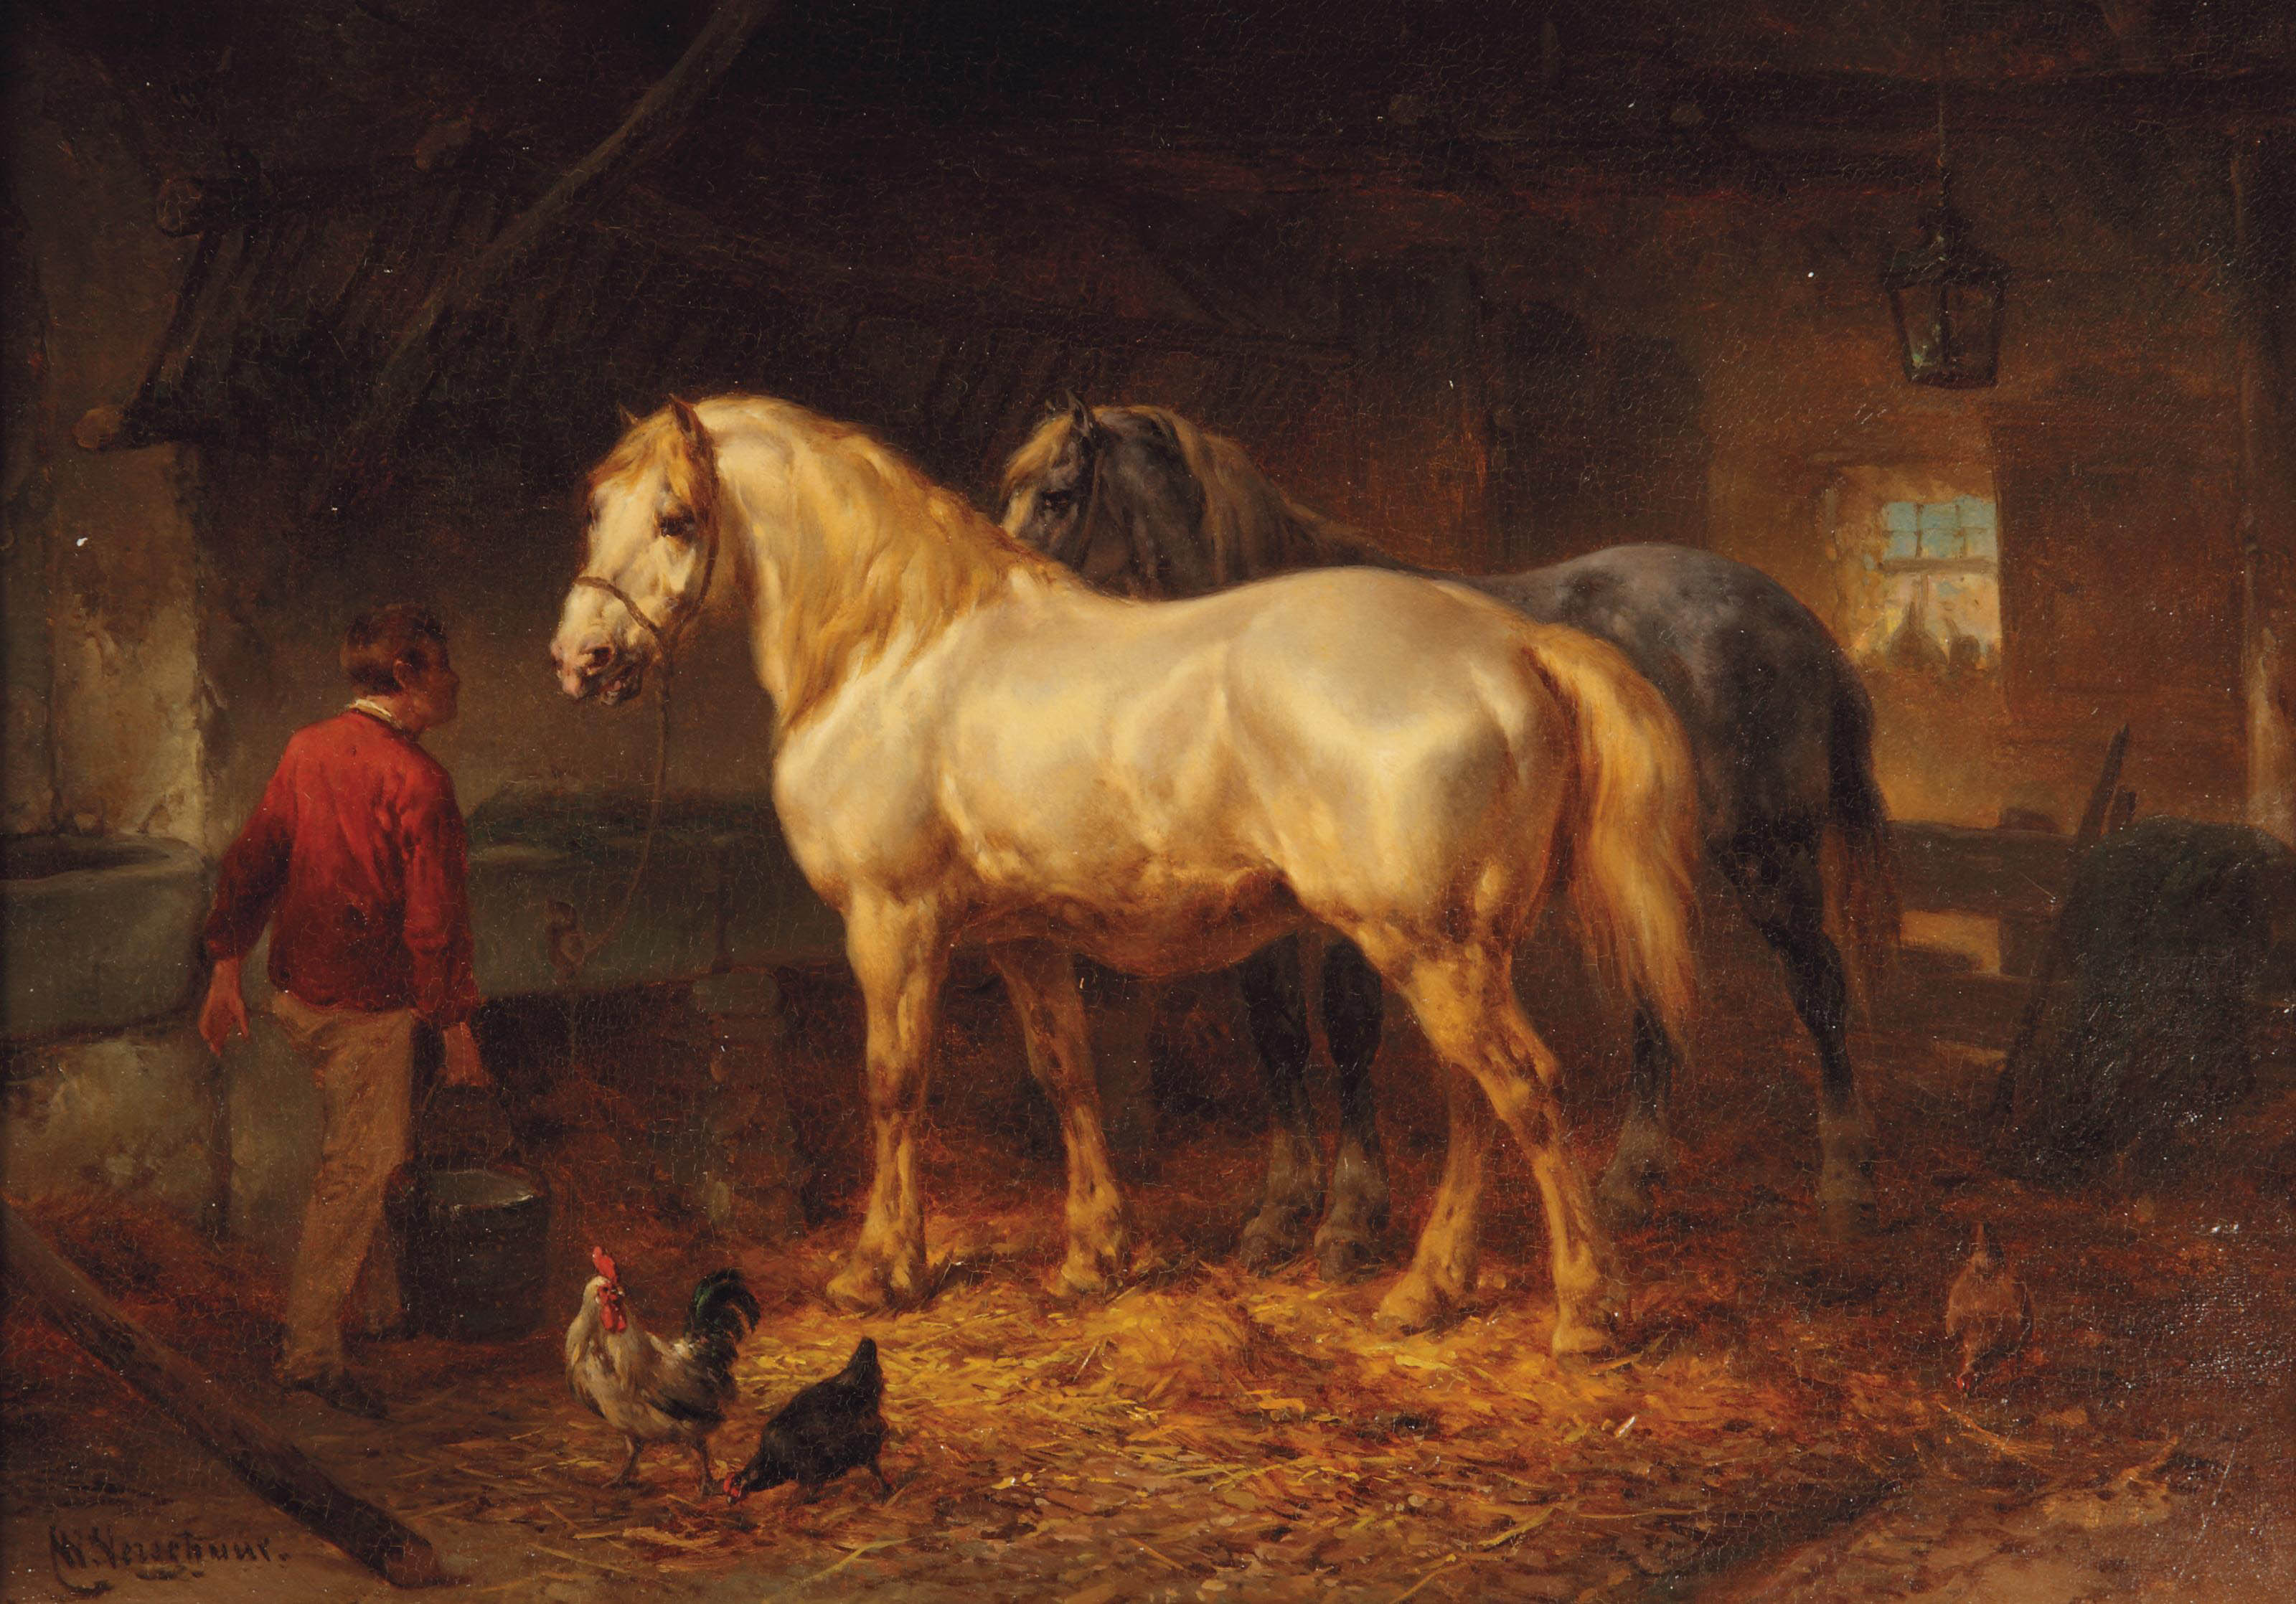 Tending to the horses